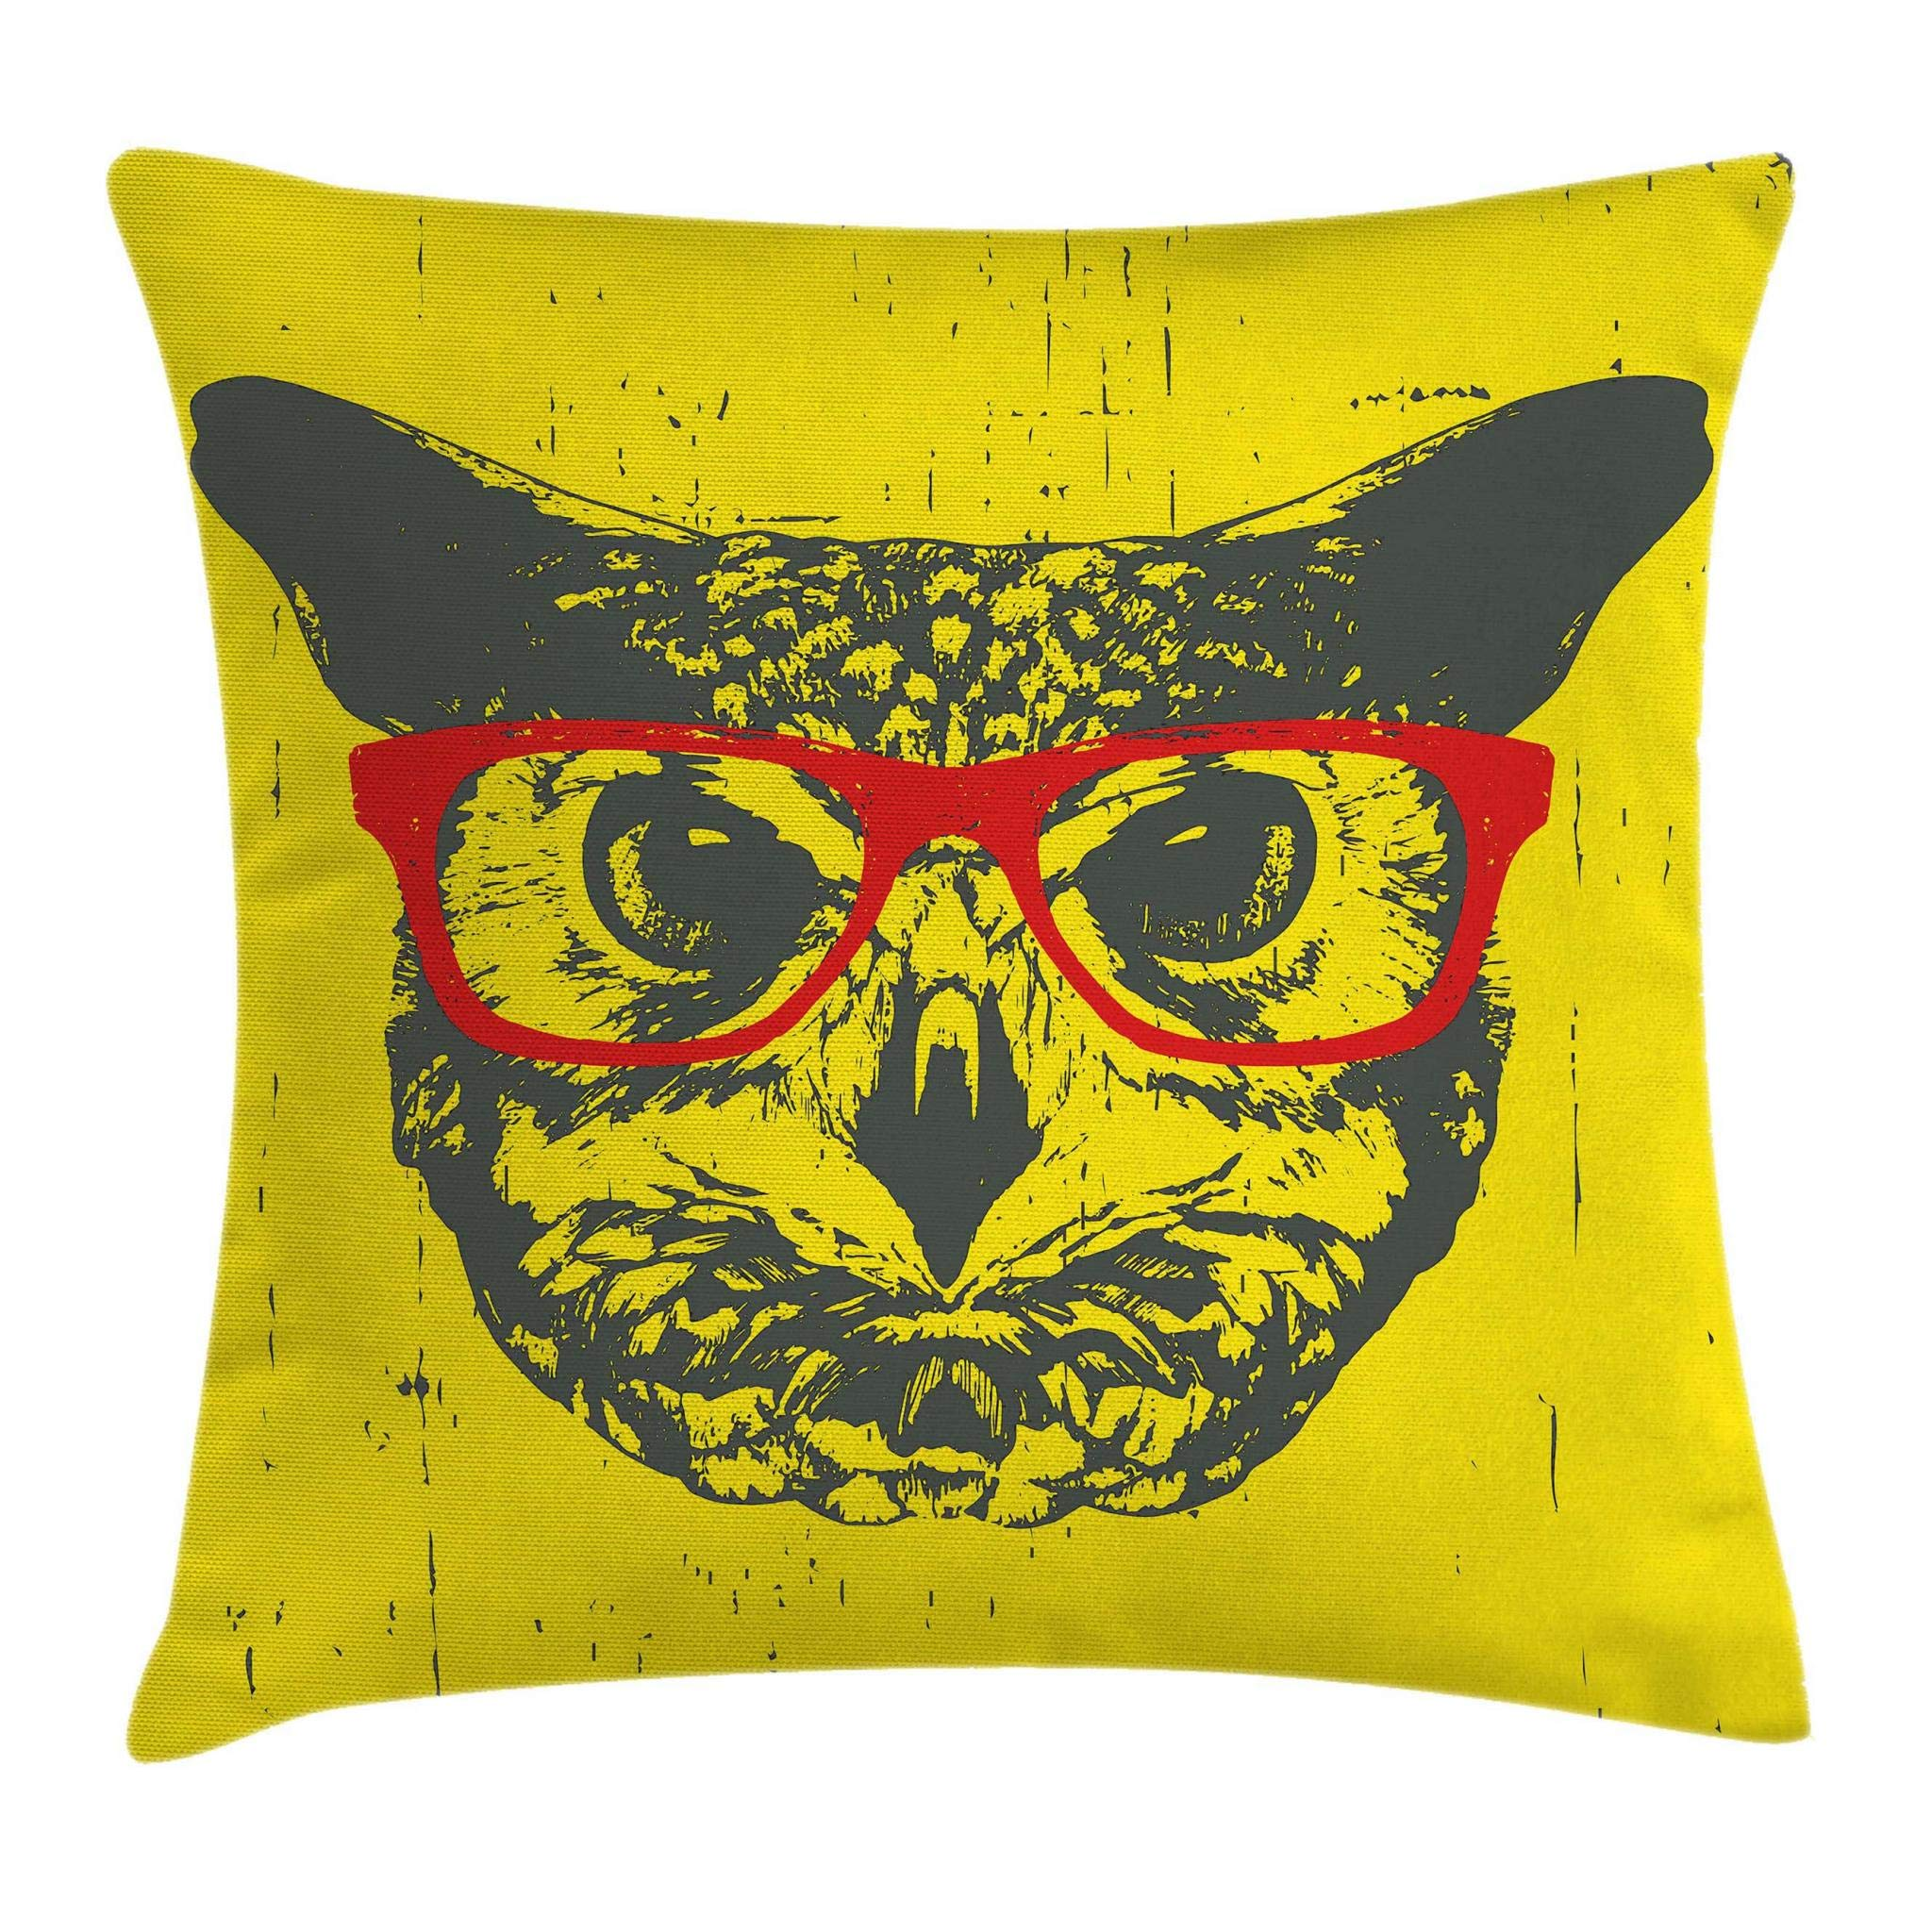 Ambesonne Modern Throw Pillow Cushion Cover, Owl with Glasses Portrait Hipster Nocturnal Animal Grunge Humor Graphic, Decorative Square Accent Pillow Case, 18 X 18 Inches, Dark Grey Yellow Red by Ambesonne